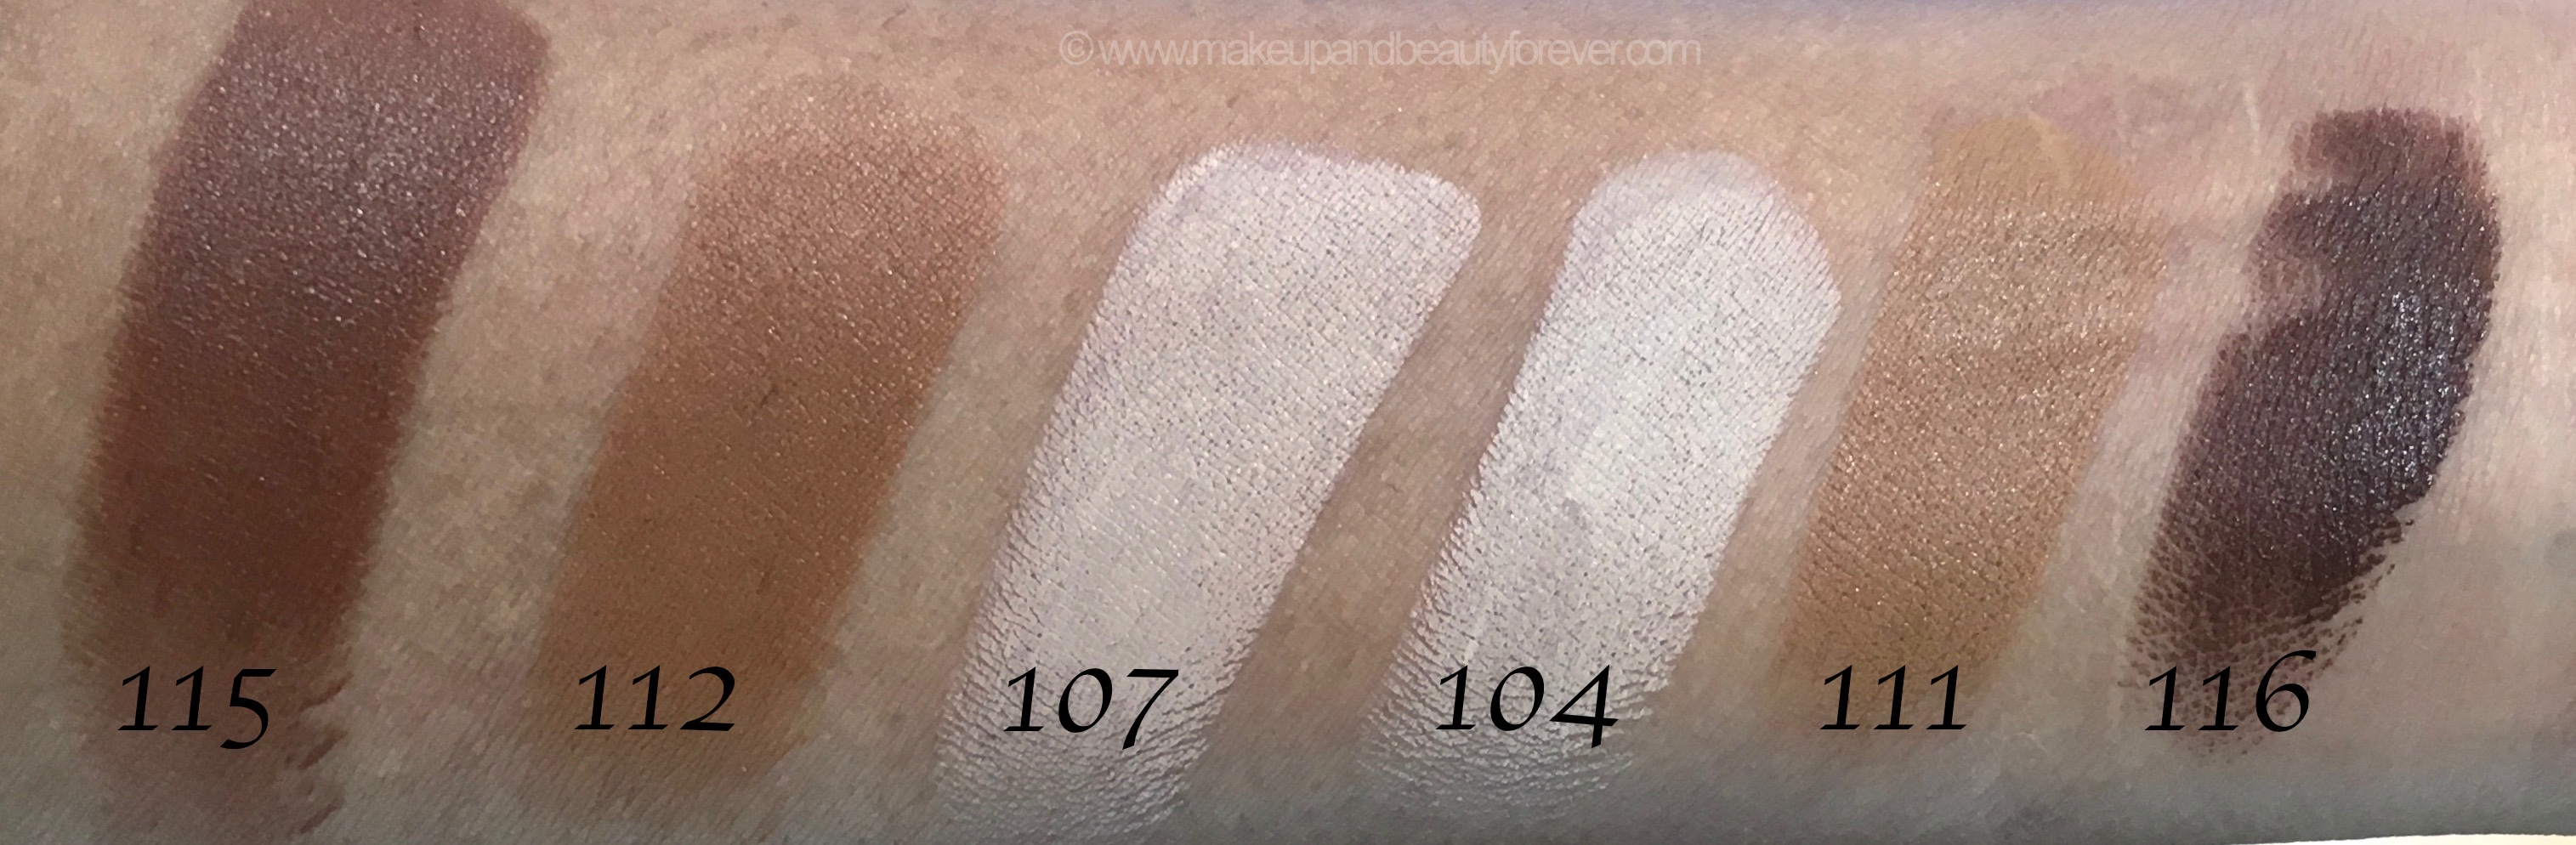 all inglot stick foundation shades review swatches 115 112